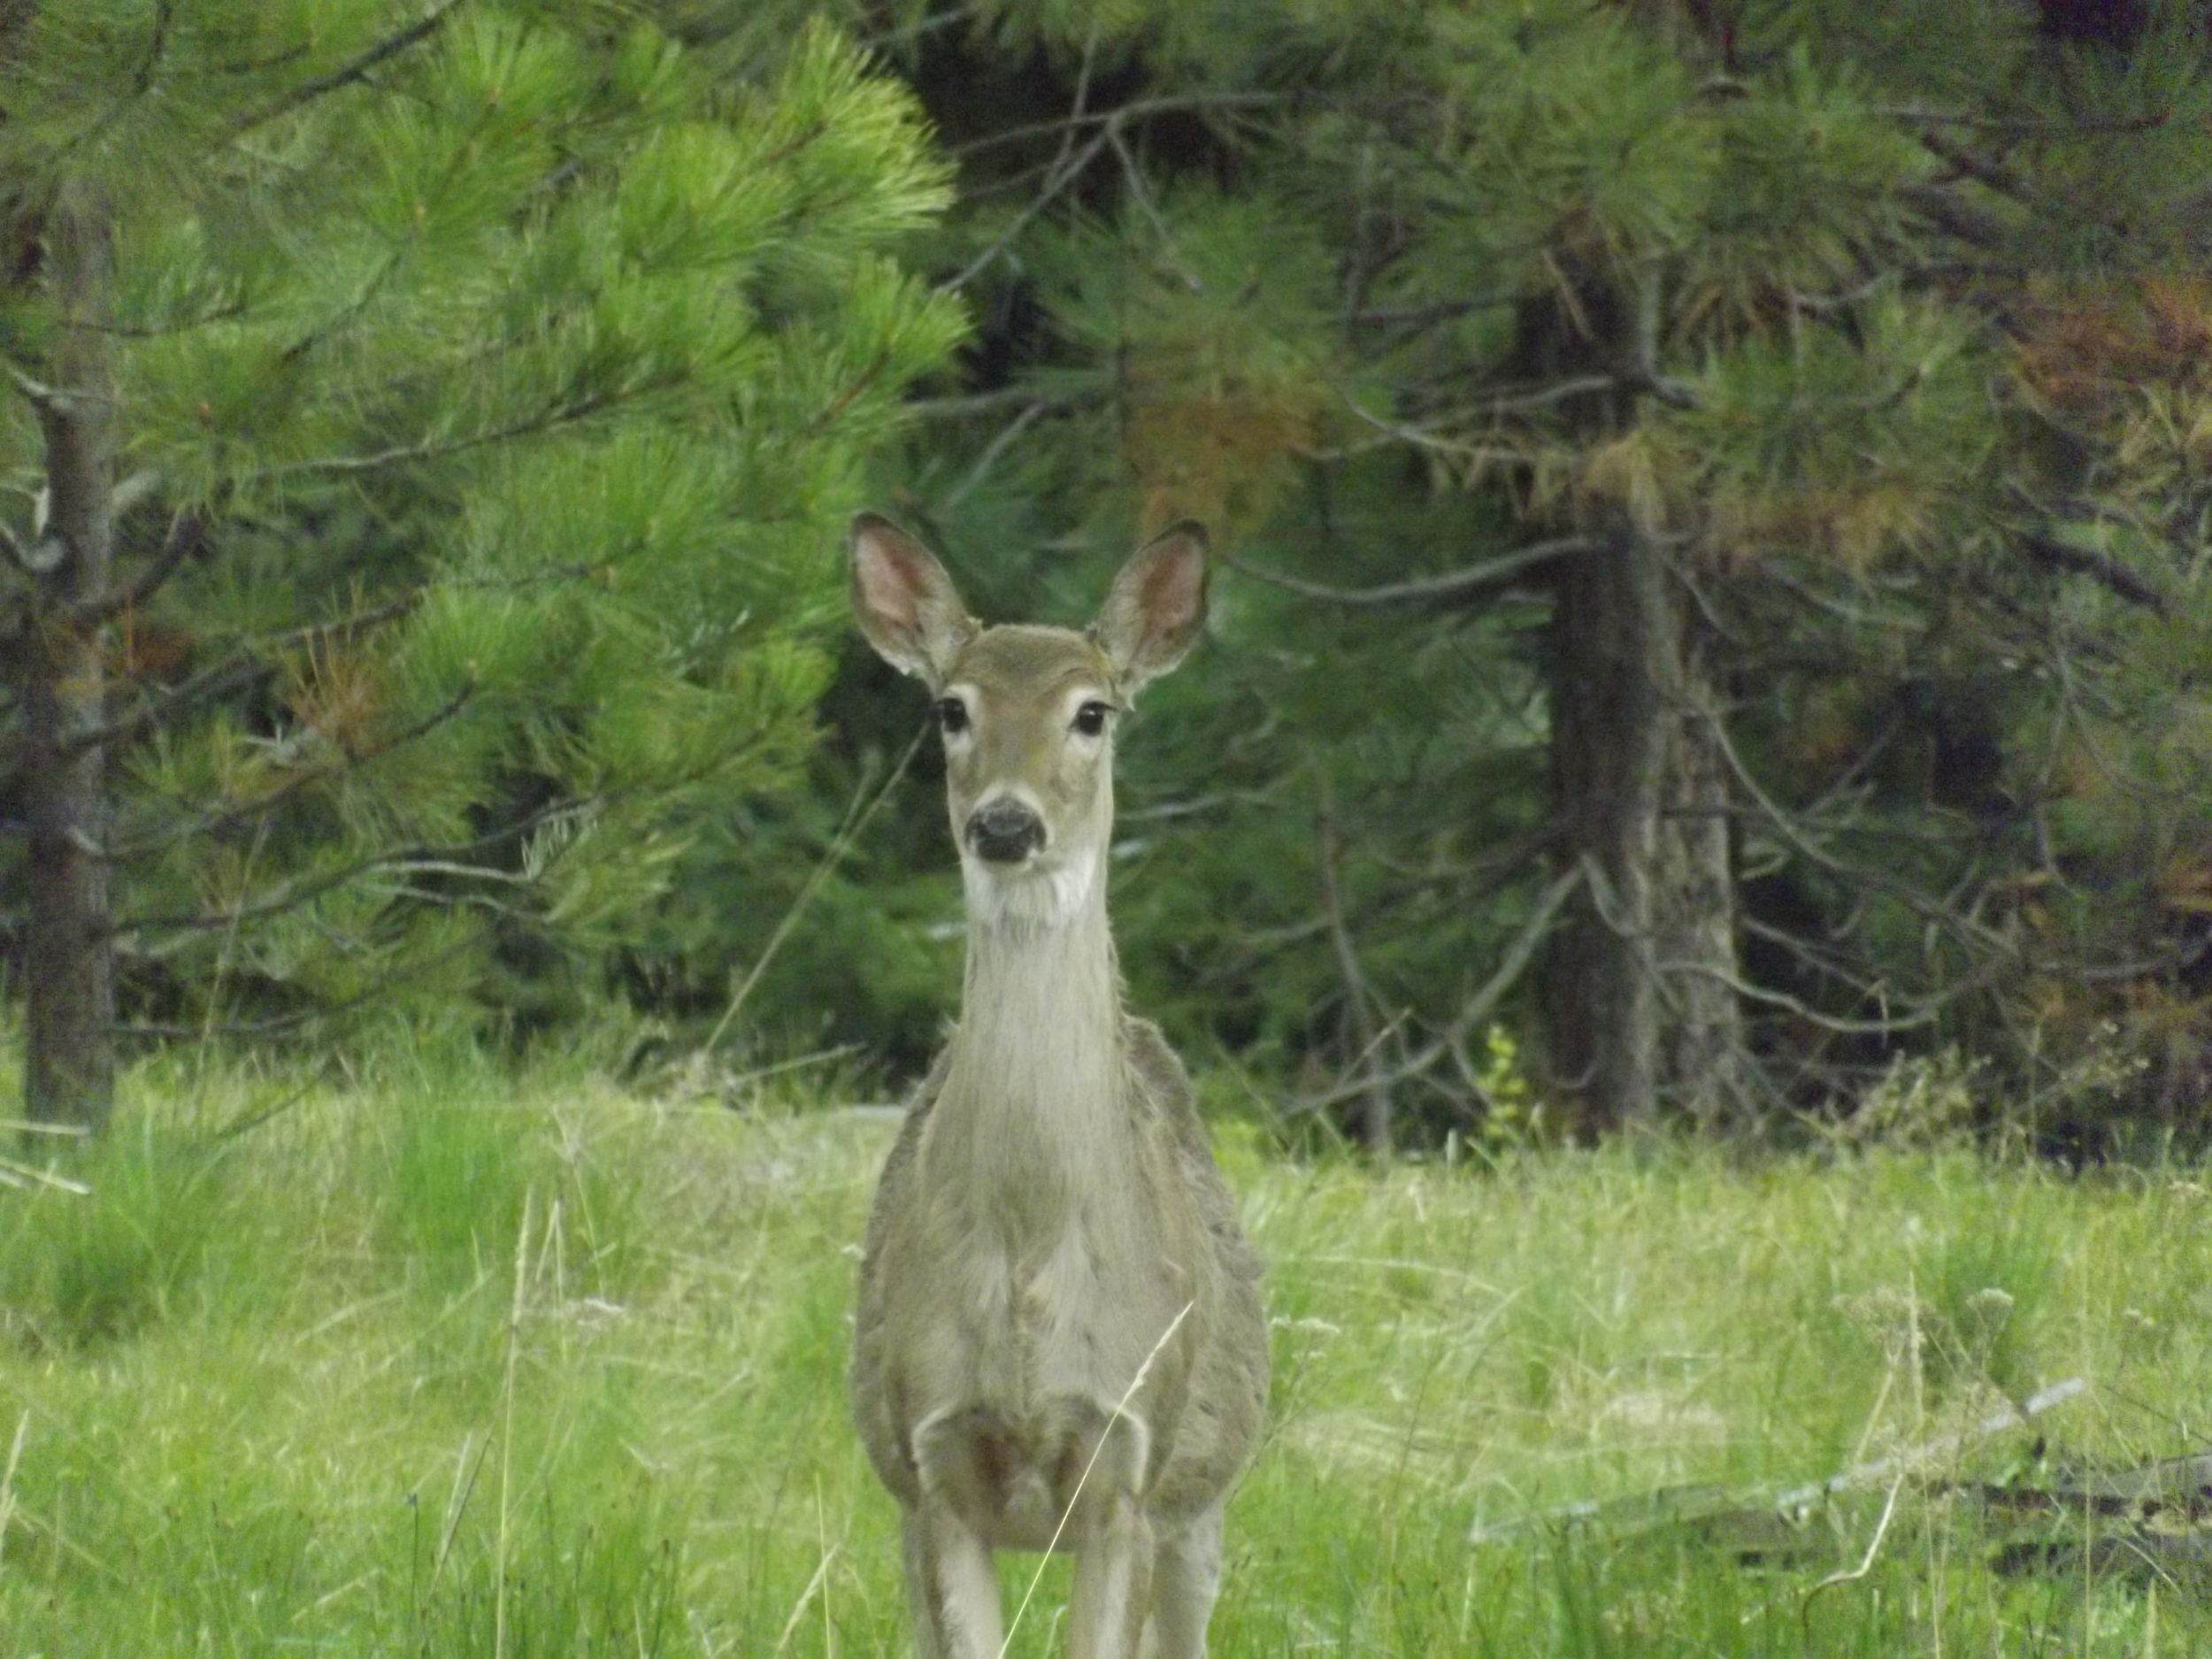 Deer on the border of our yard looking at us watch her.